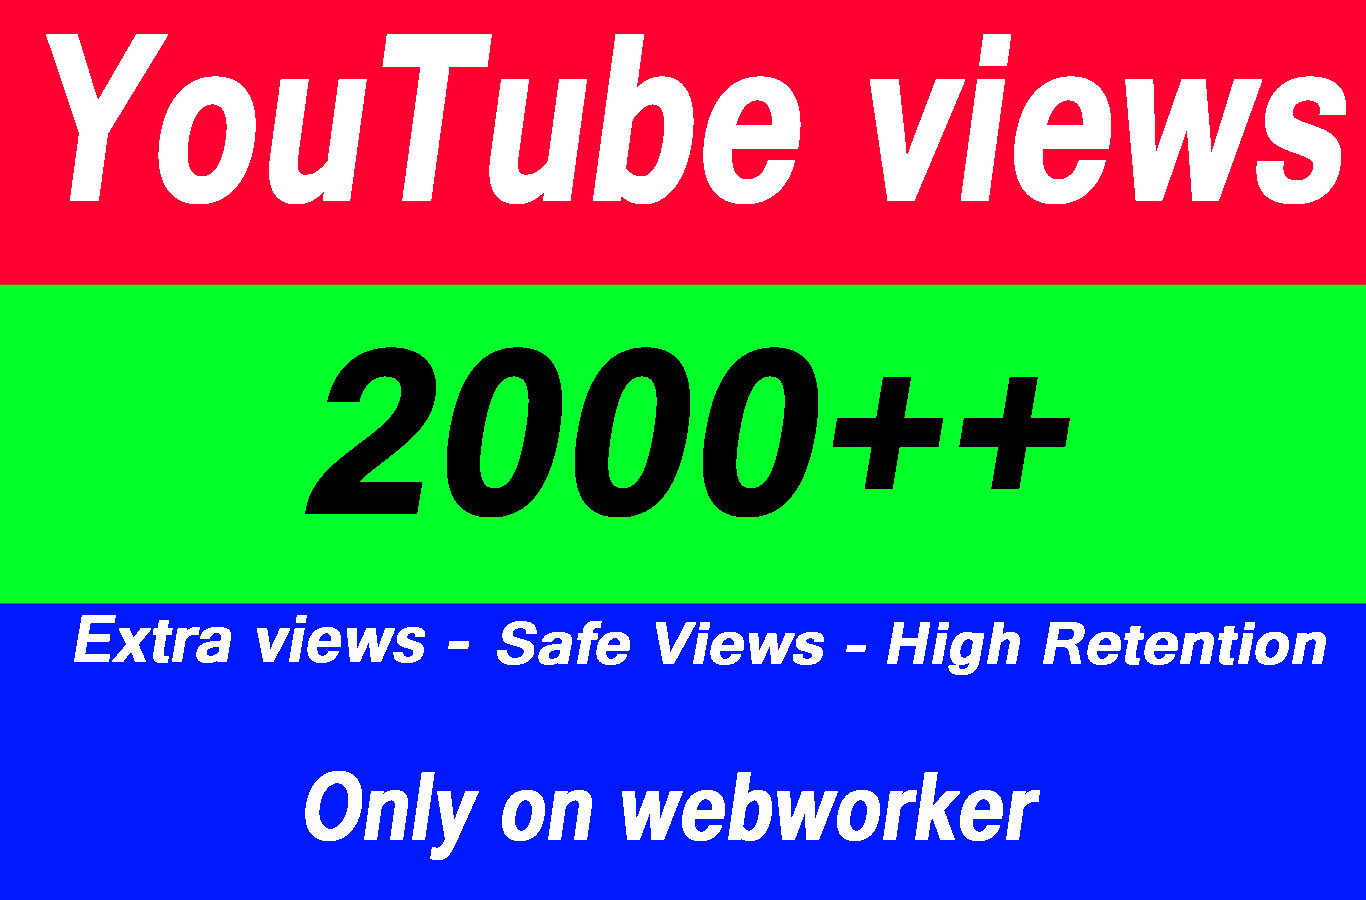 Get 2000 High Quality Views with choice Extra service 1000, 3000, 4000, 5000, 6000, 7000, 8000, 9000,10000, 20000 and 50,000, 50k, 100,000 100k Views